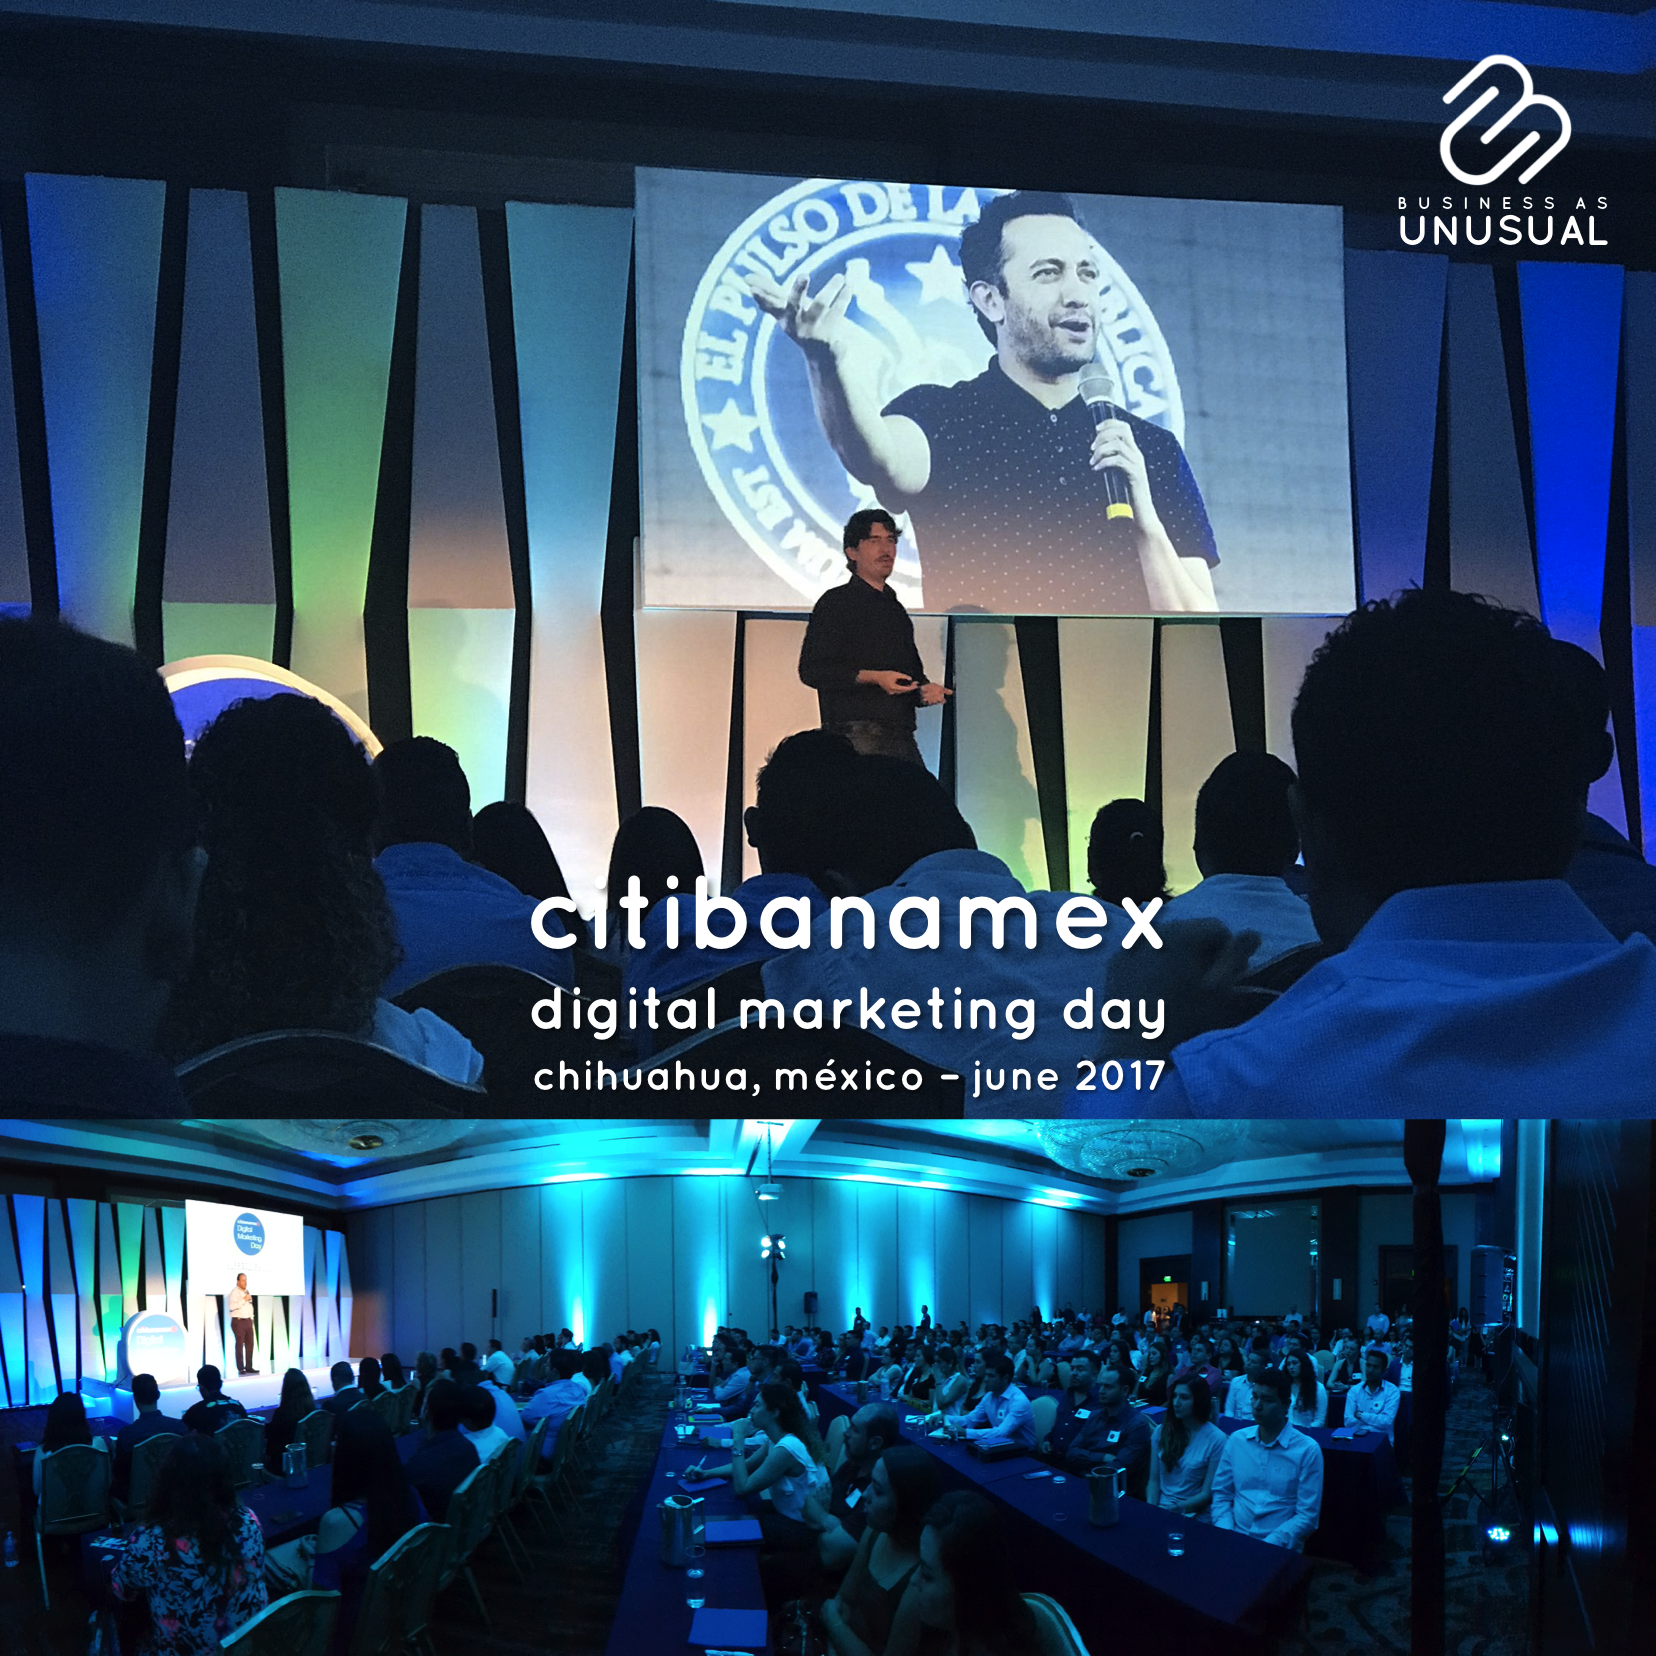 Citibanamex - Digital Marketing Day - Chihuahua